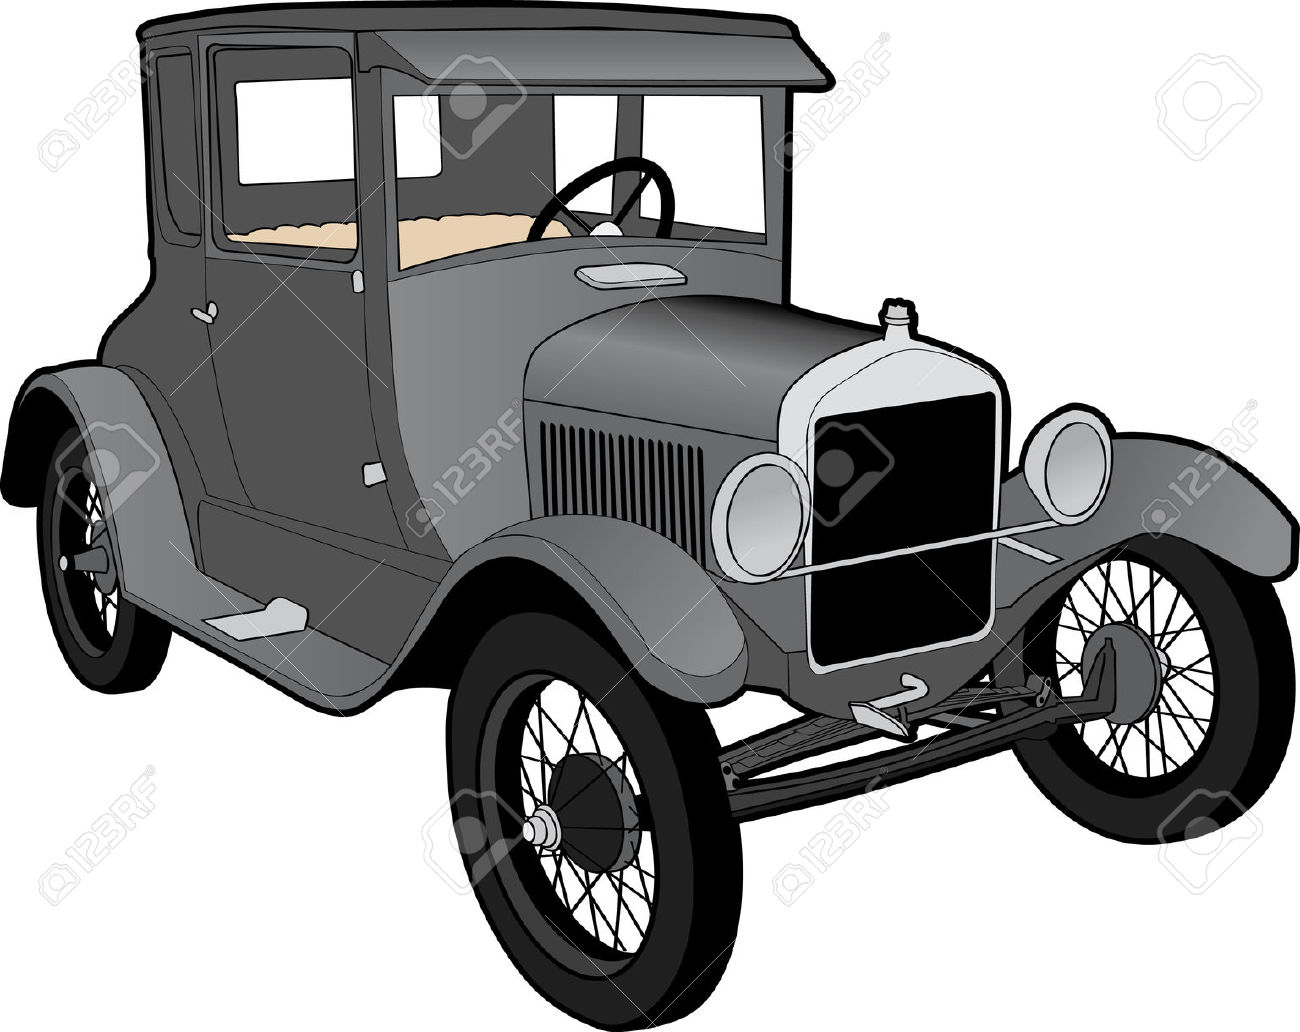 Model t ford clipart.